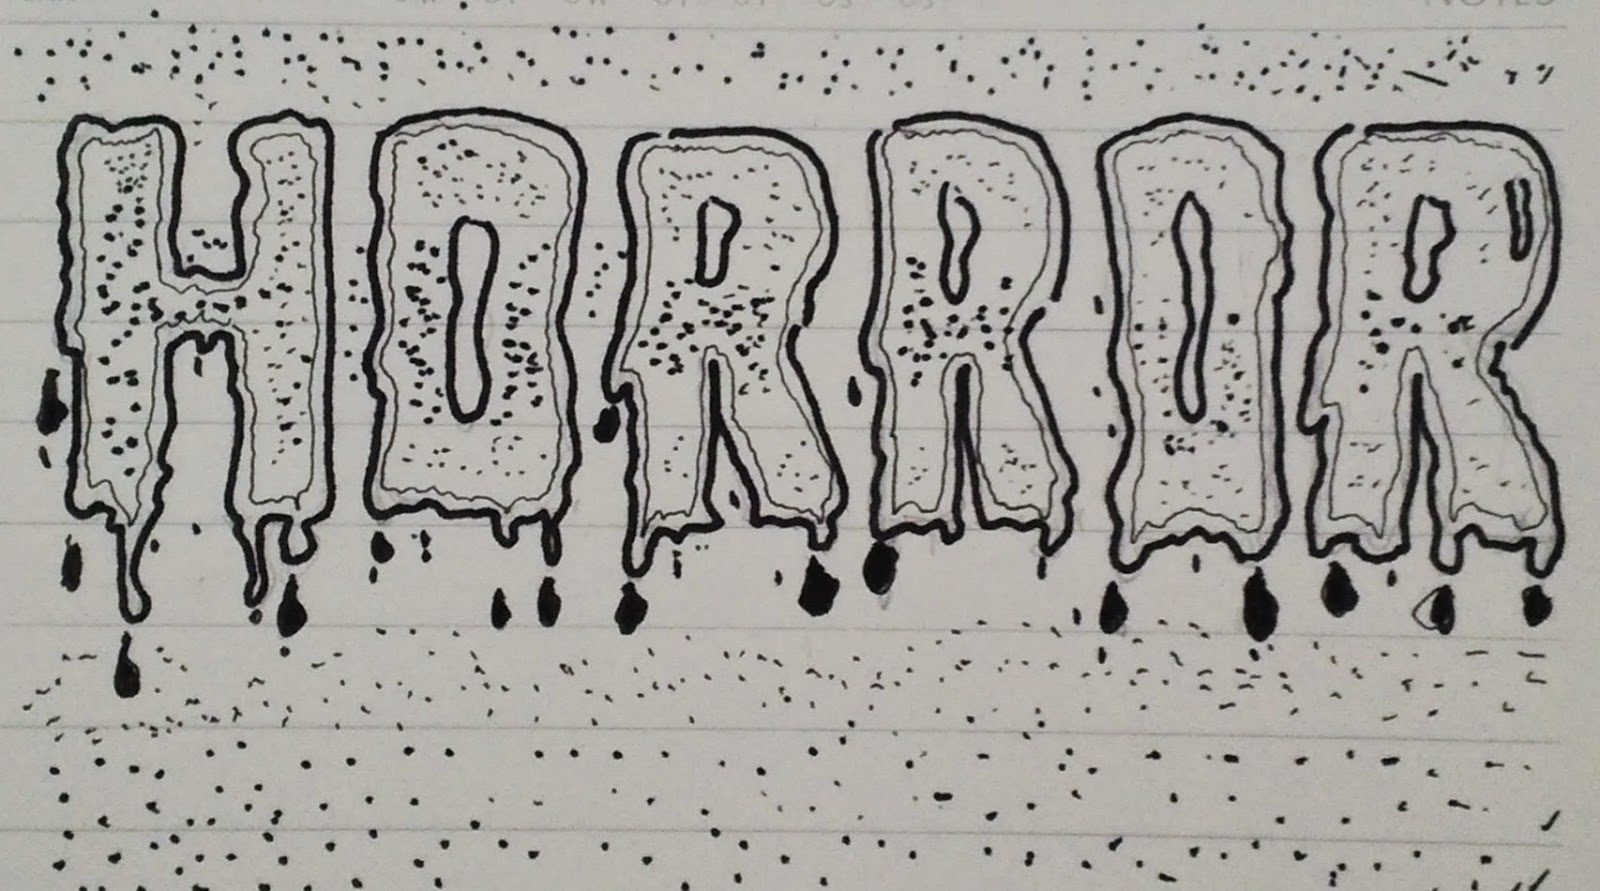 Horror Lettering by Imagifa